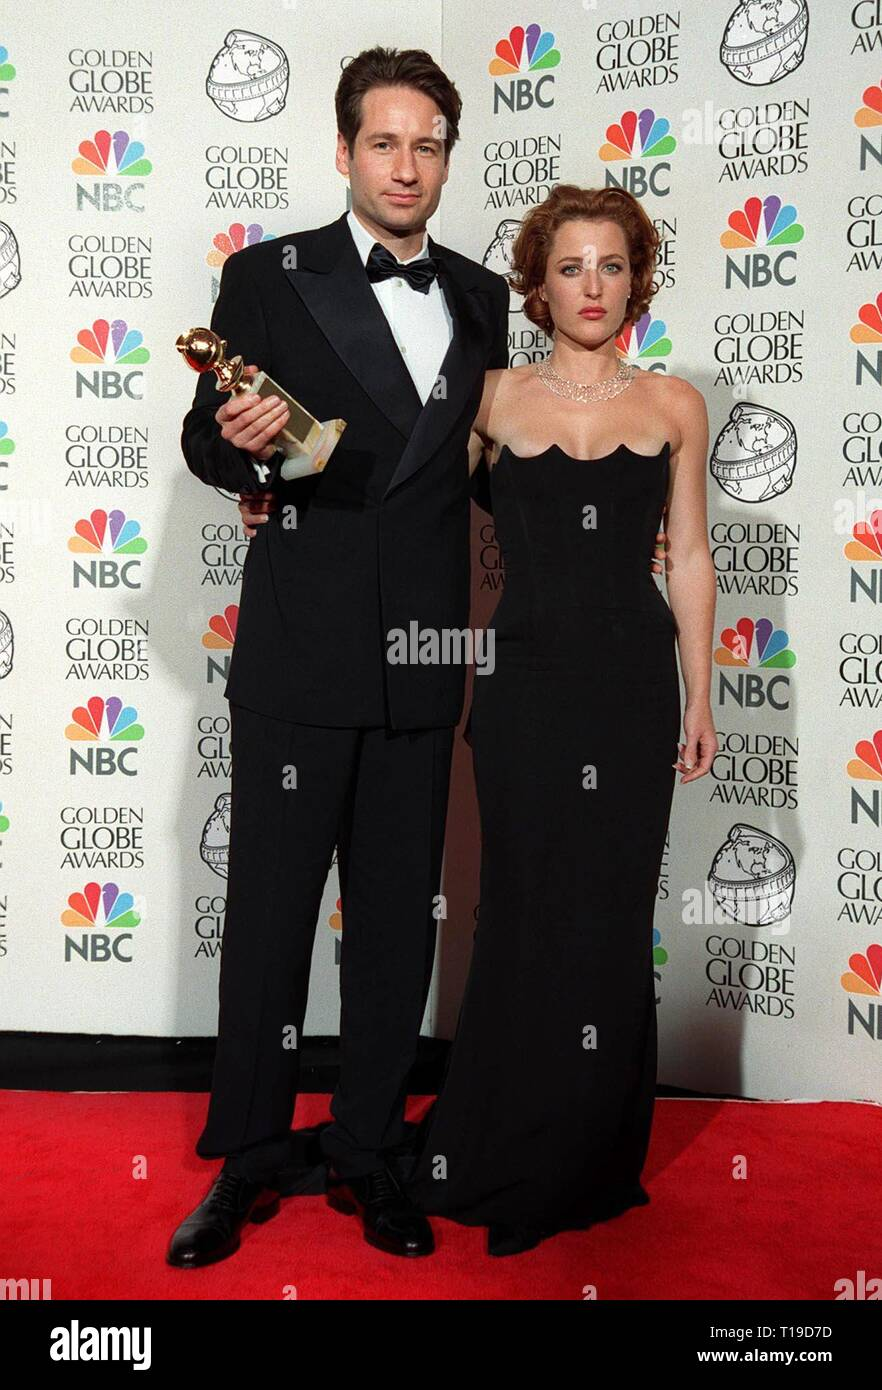 LOS ANGELES, CA - January 18, 1998: 'X-Files' stars DAVID DUCHOVNY & GILLIAN ANDERSON at the Golden Globe Awards where their show won Best TV Drama Series. - Stock Image